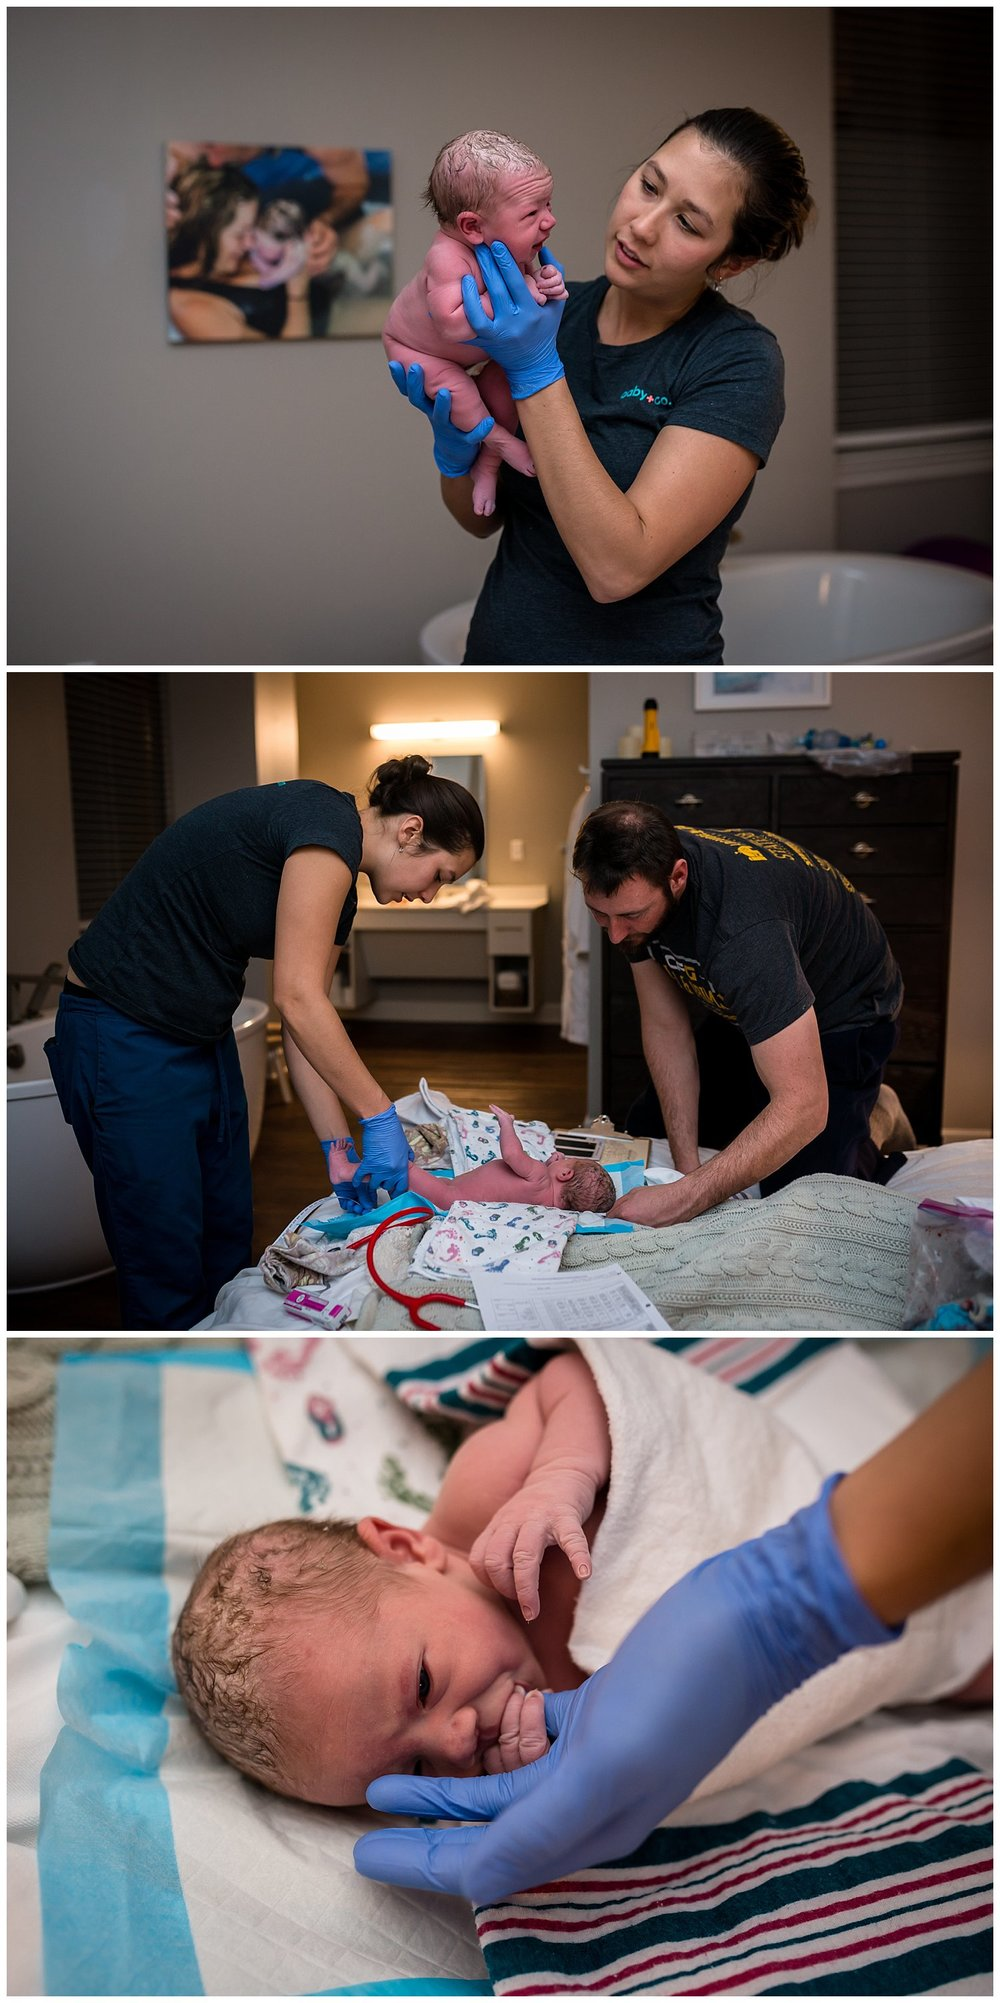 denverbirthphotographer-birthcenter-newborn